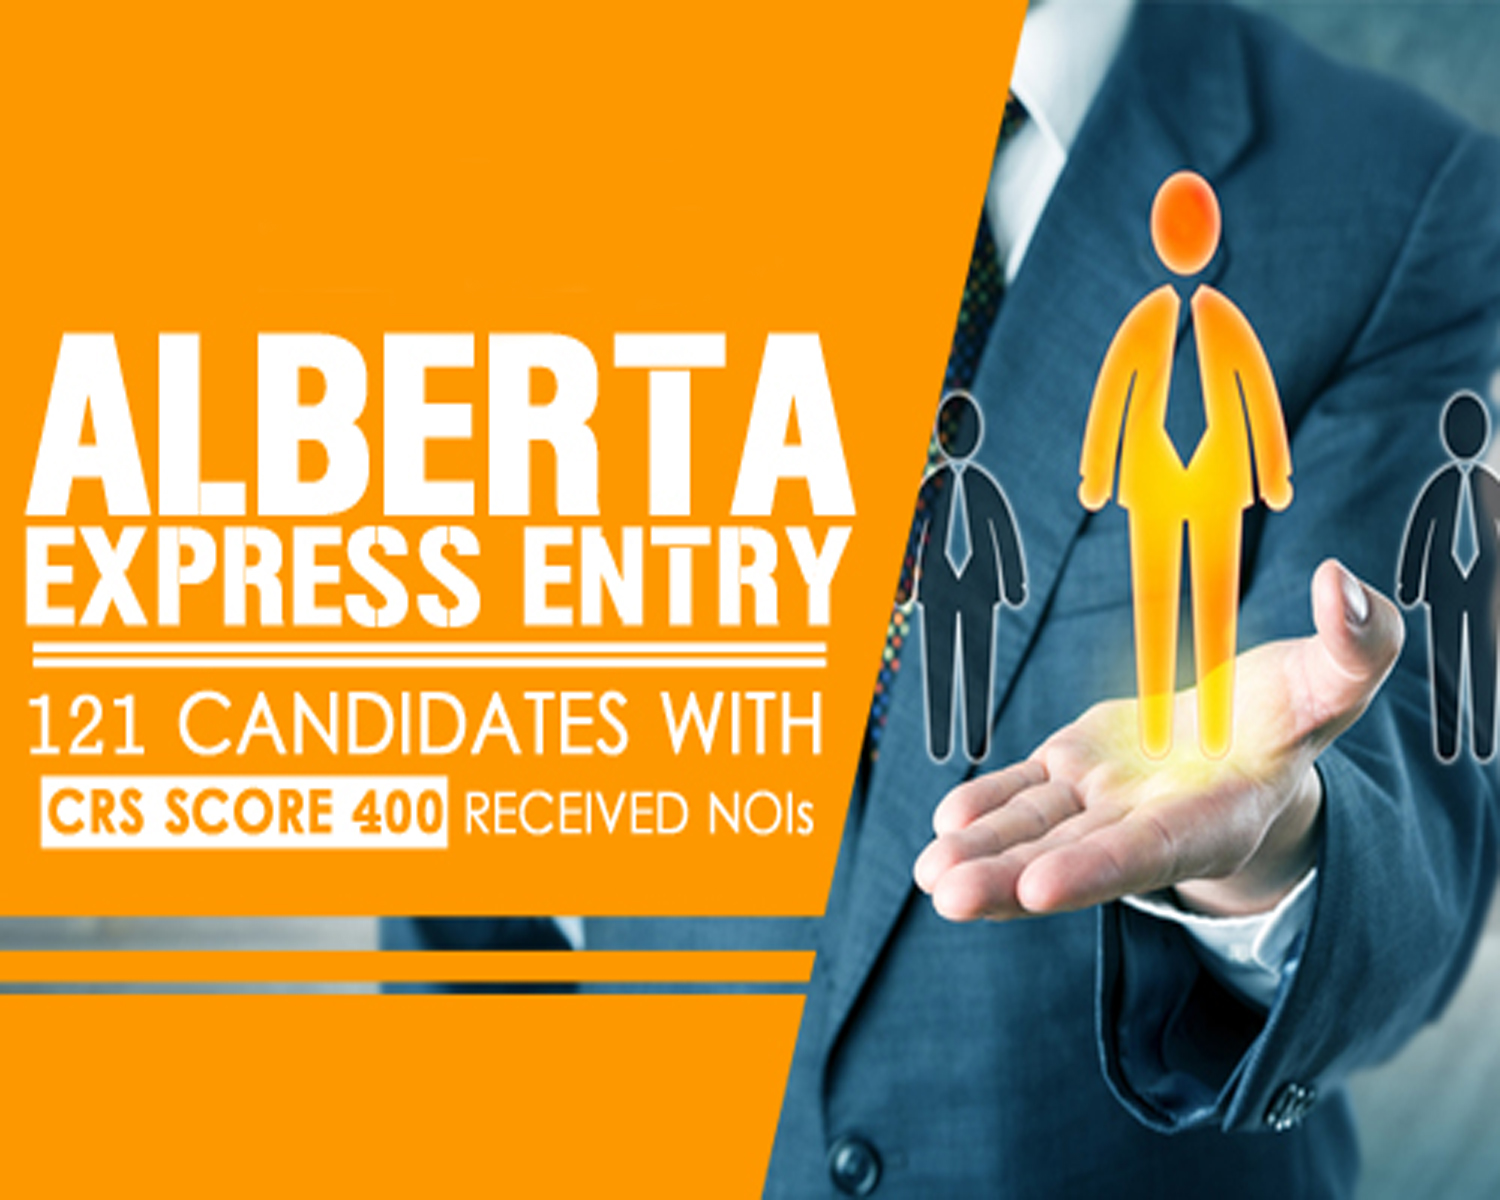 Alberta has invited 374 Express Entry candidates with CRS Score as low as 400 for Canadian permanent residency